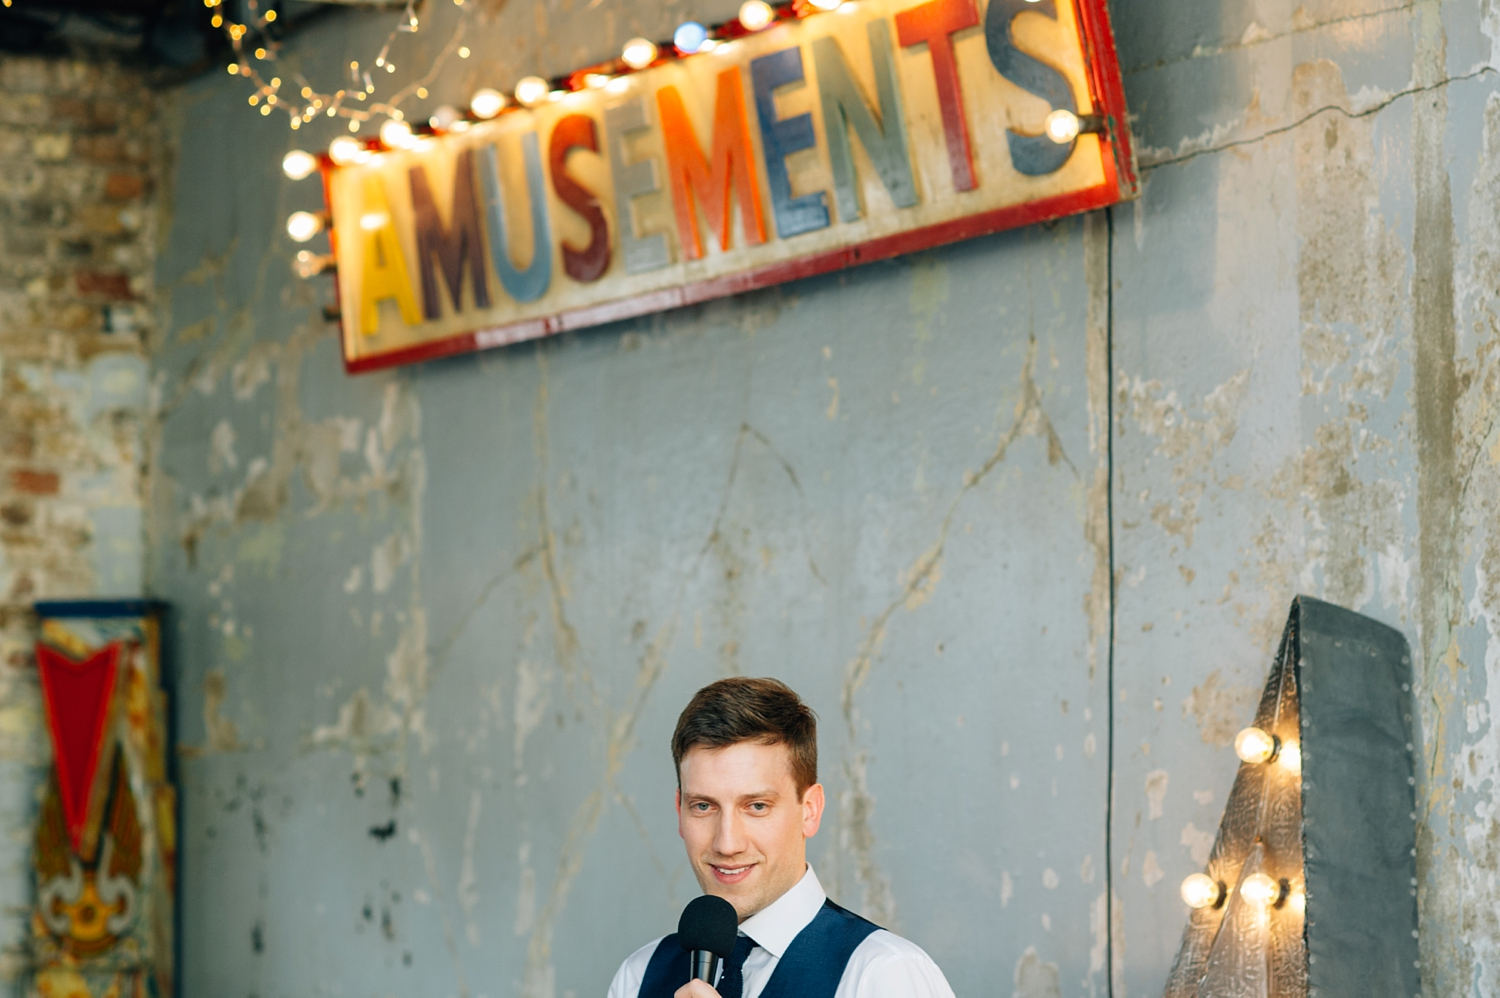 0159-lisa-devine-alternative-wedding-photography-london-hackney-dalston-london-photography-townhall-hotel.JPG